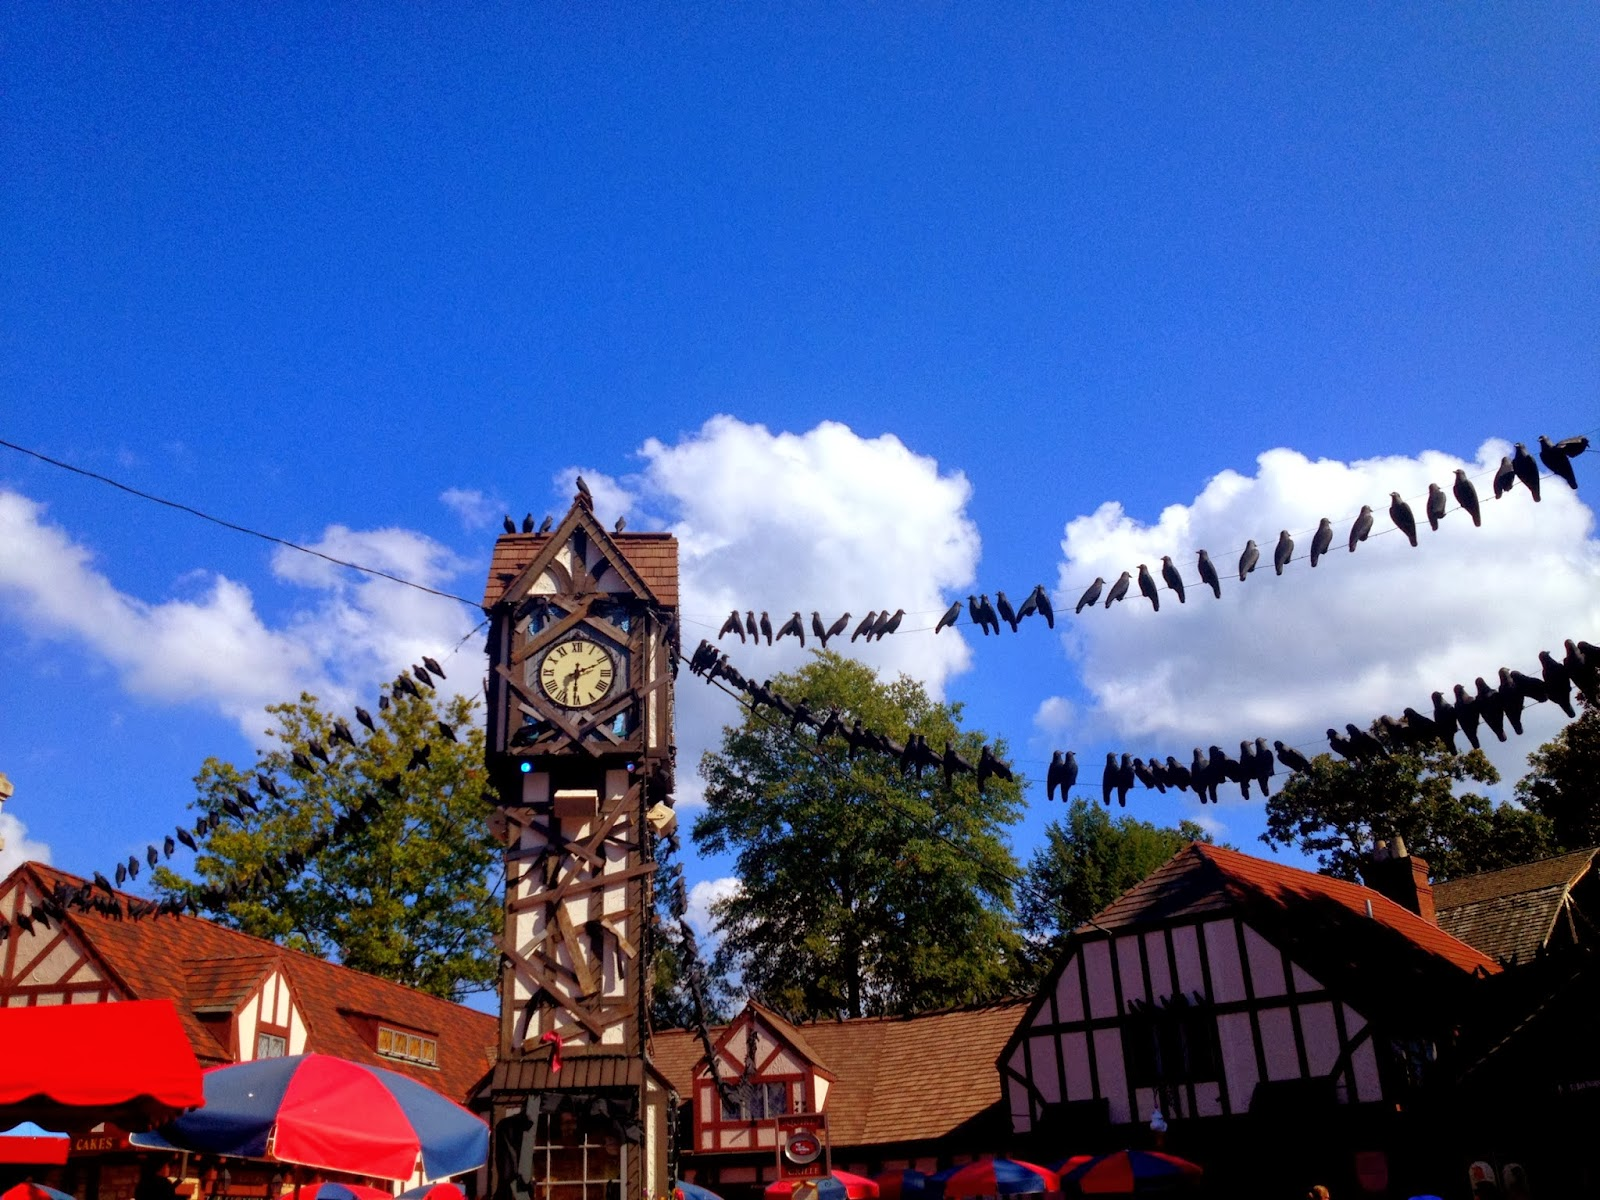 A couple 39 s adventure busch gardens howl o scream - Busch gardens williamsburg halloween ...